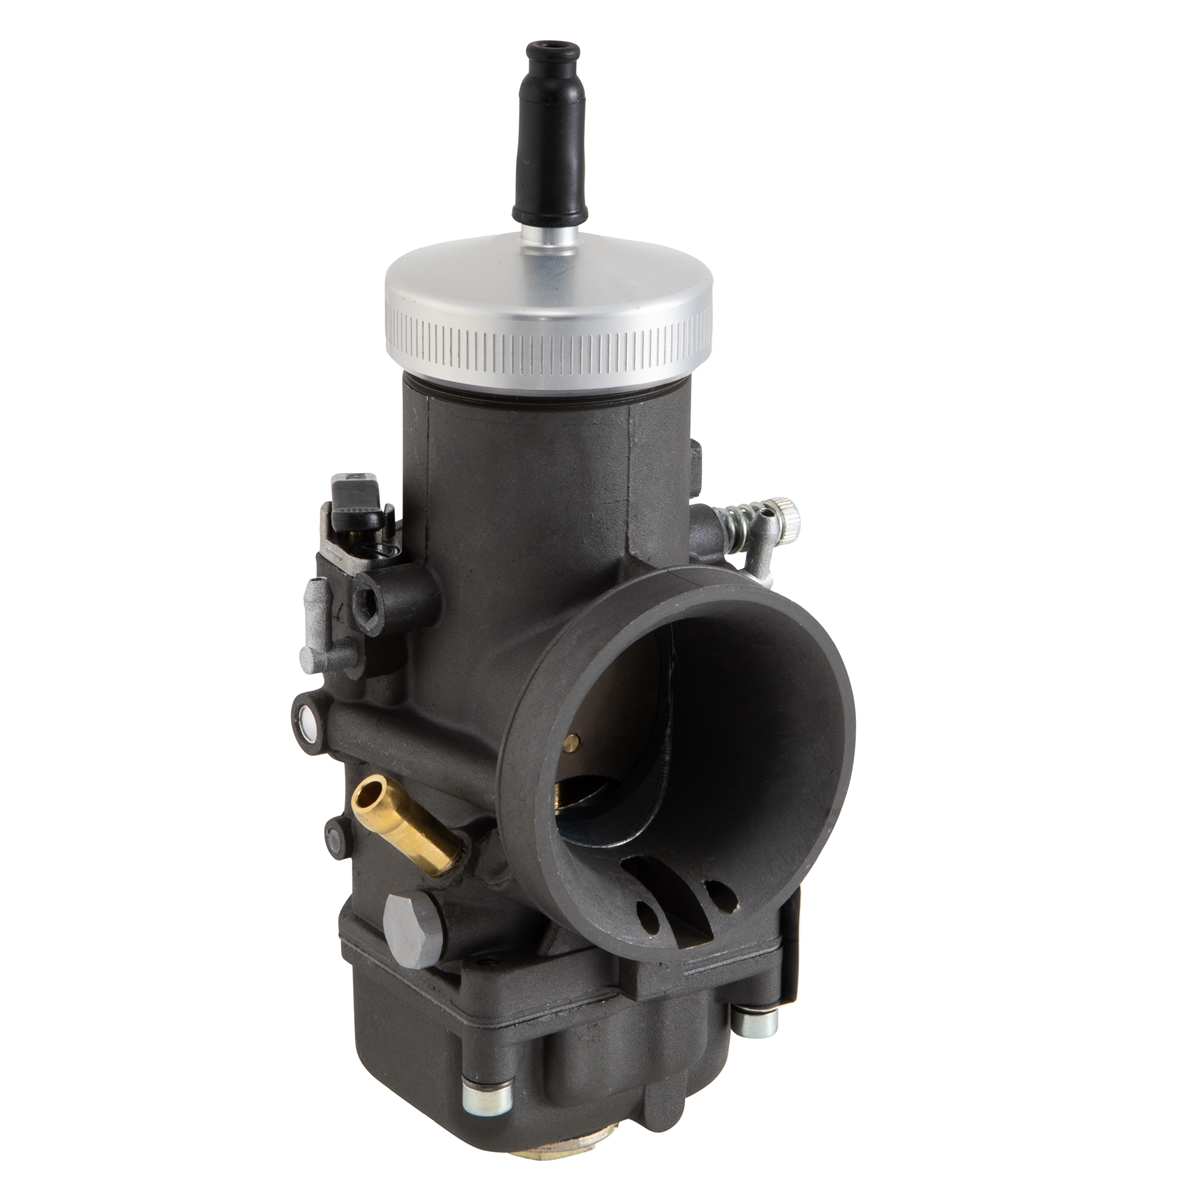 Product Image for 'Carburettor DELL'ORTO VHSB 39Title'